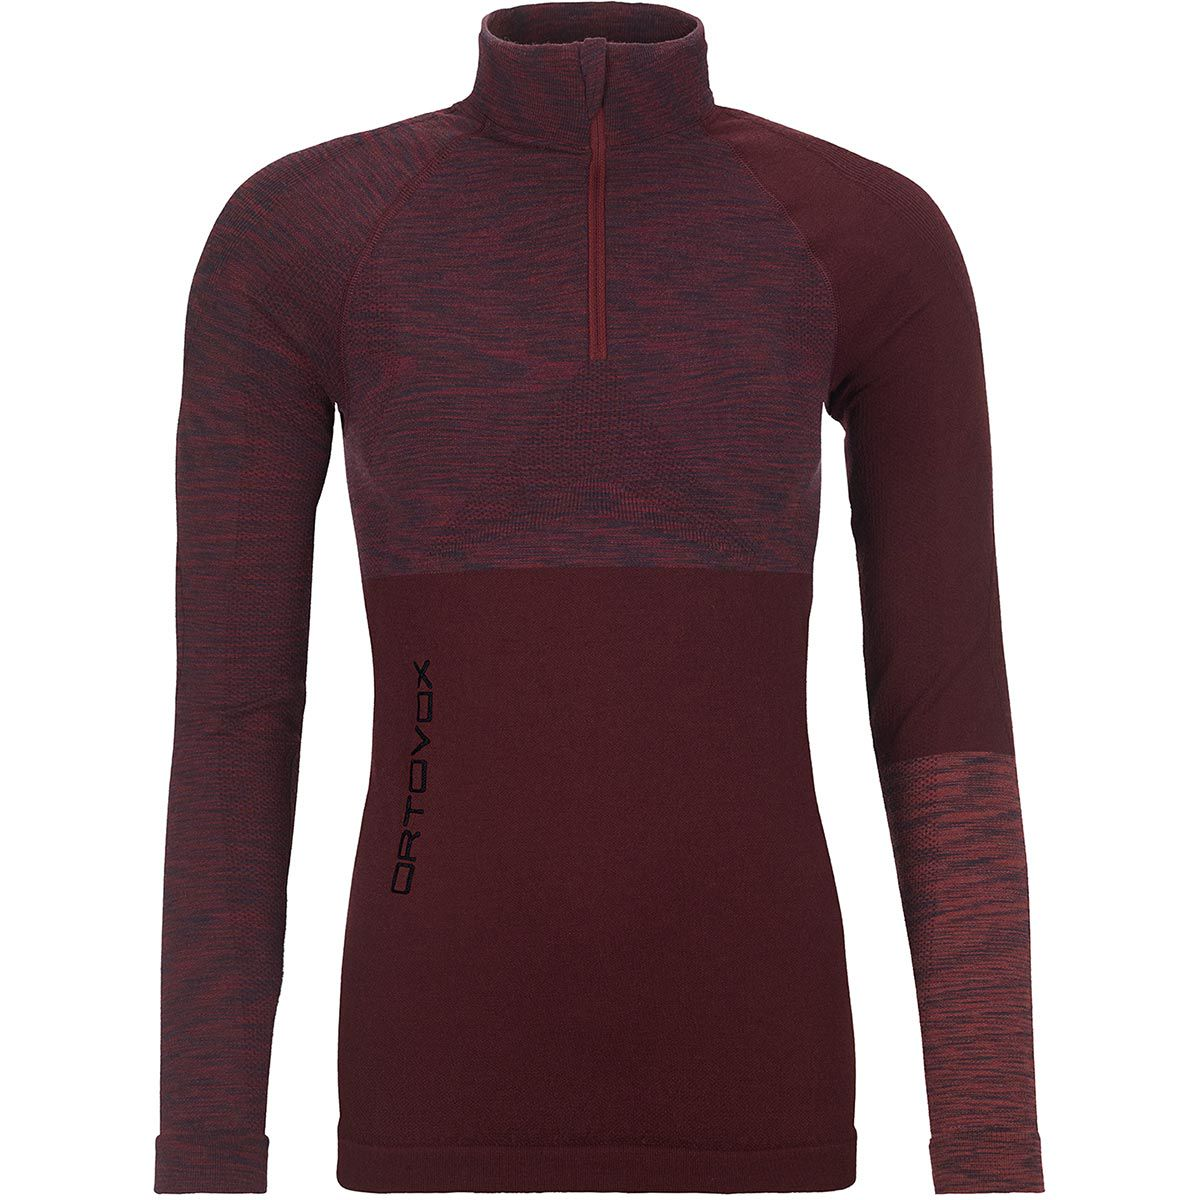 Ortovox Damen Competition Zip Shirt red berry (Größe XS, Rot) | Langarm Unterhemden > Damen